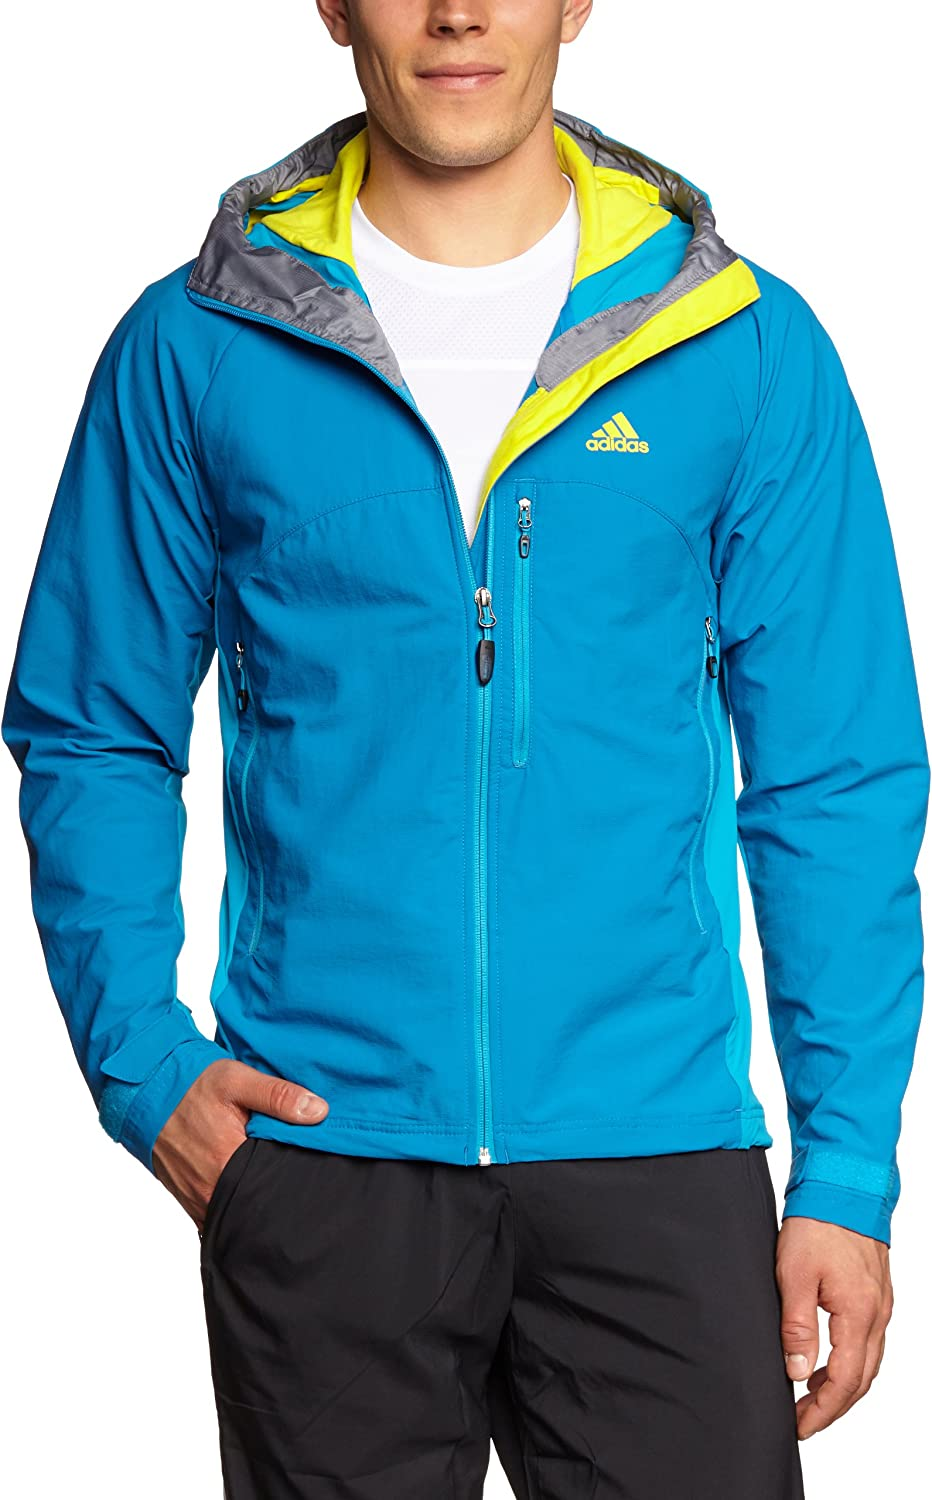 adidas Herren Jacke Hiking Trekking Lite Hooded Soft Shell